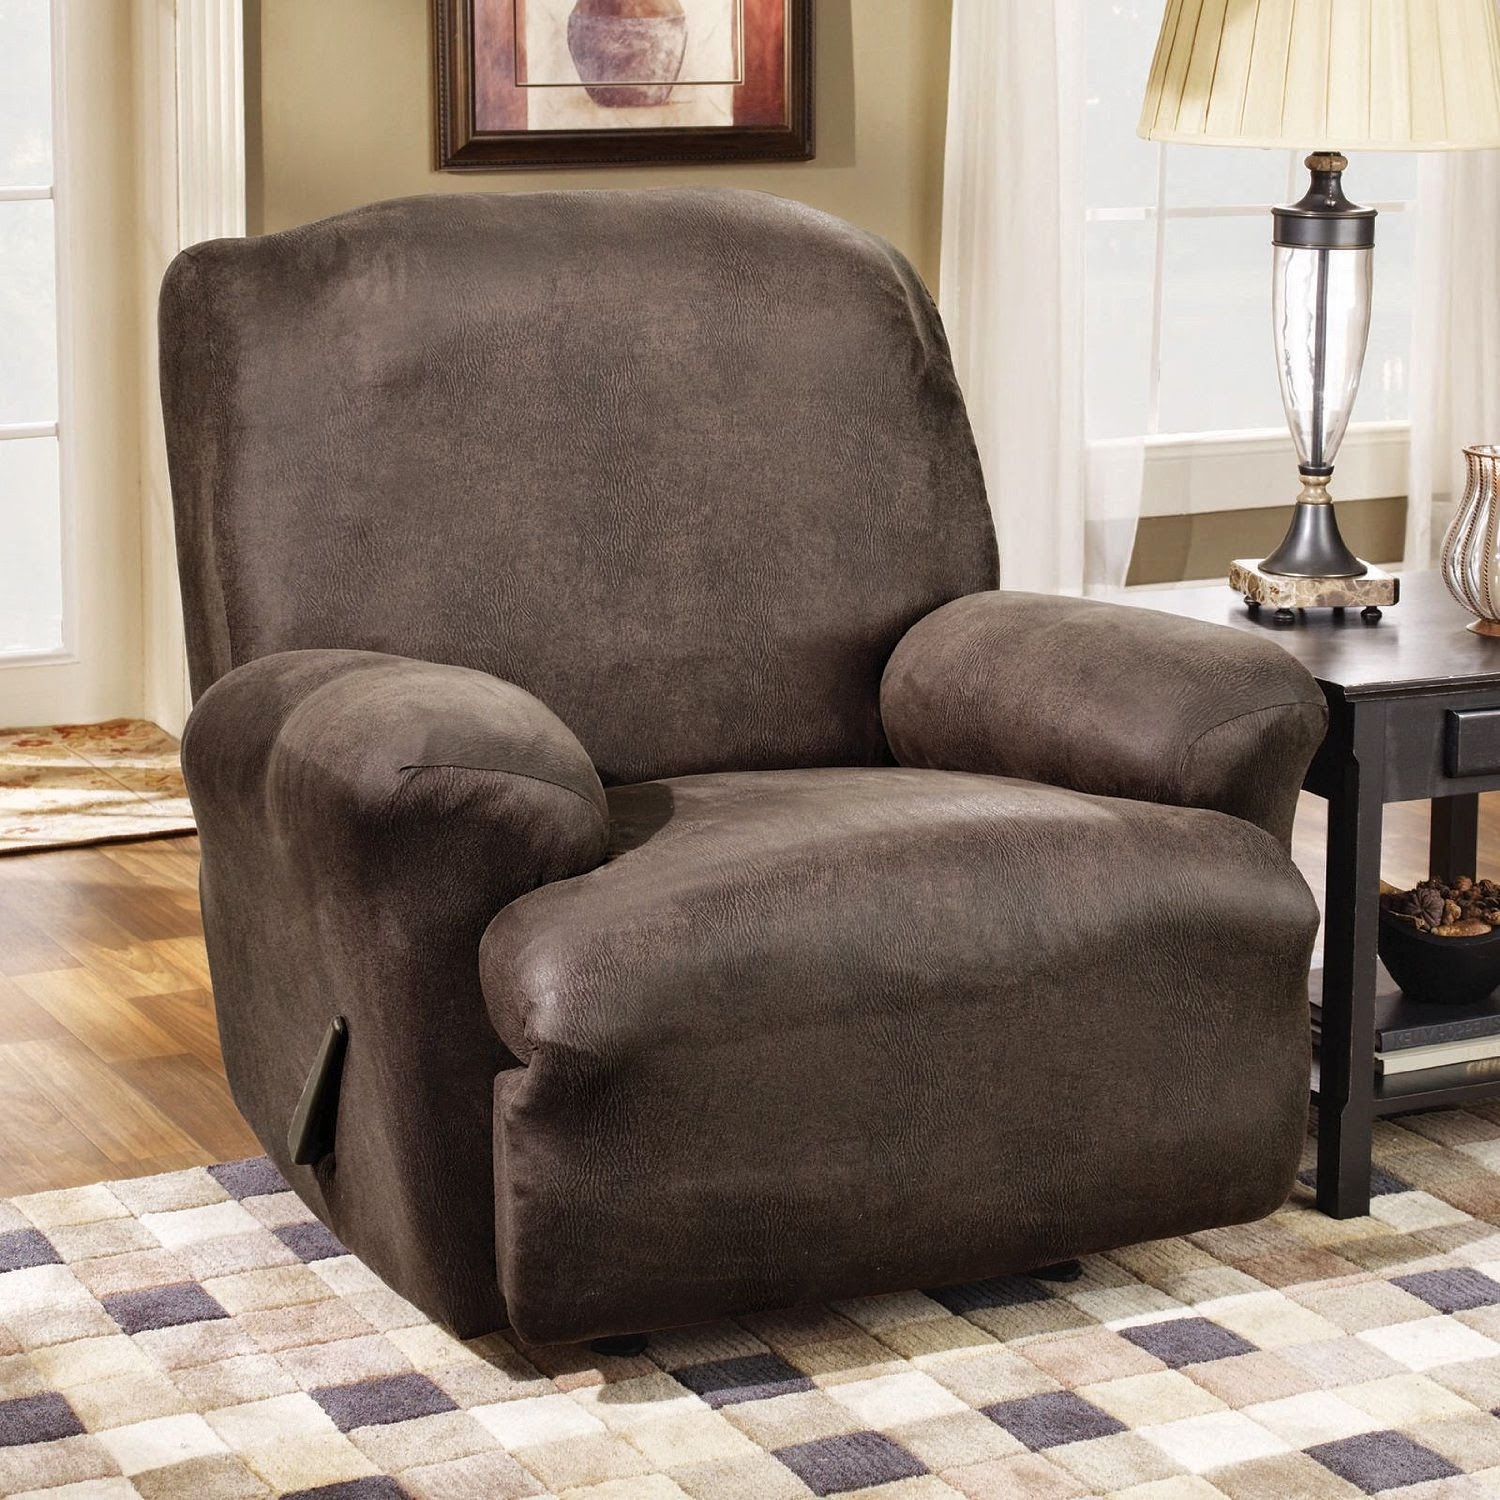 Best Reclining Sofa For The Money: Slipcovers For